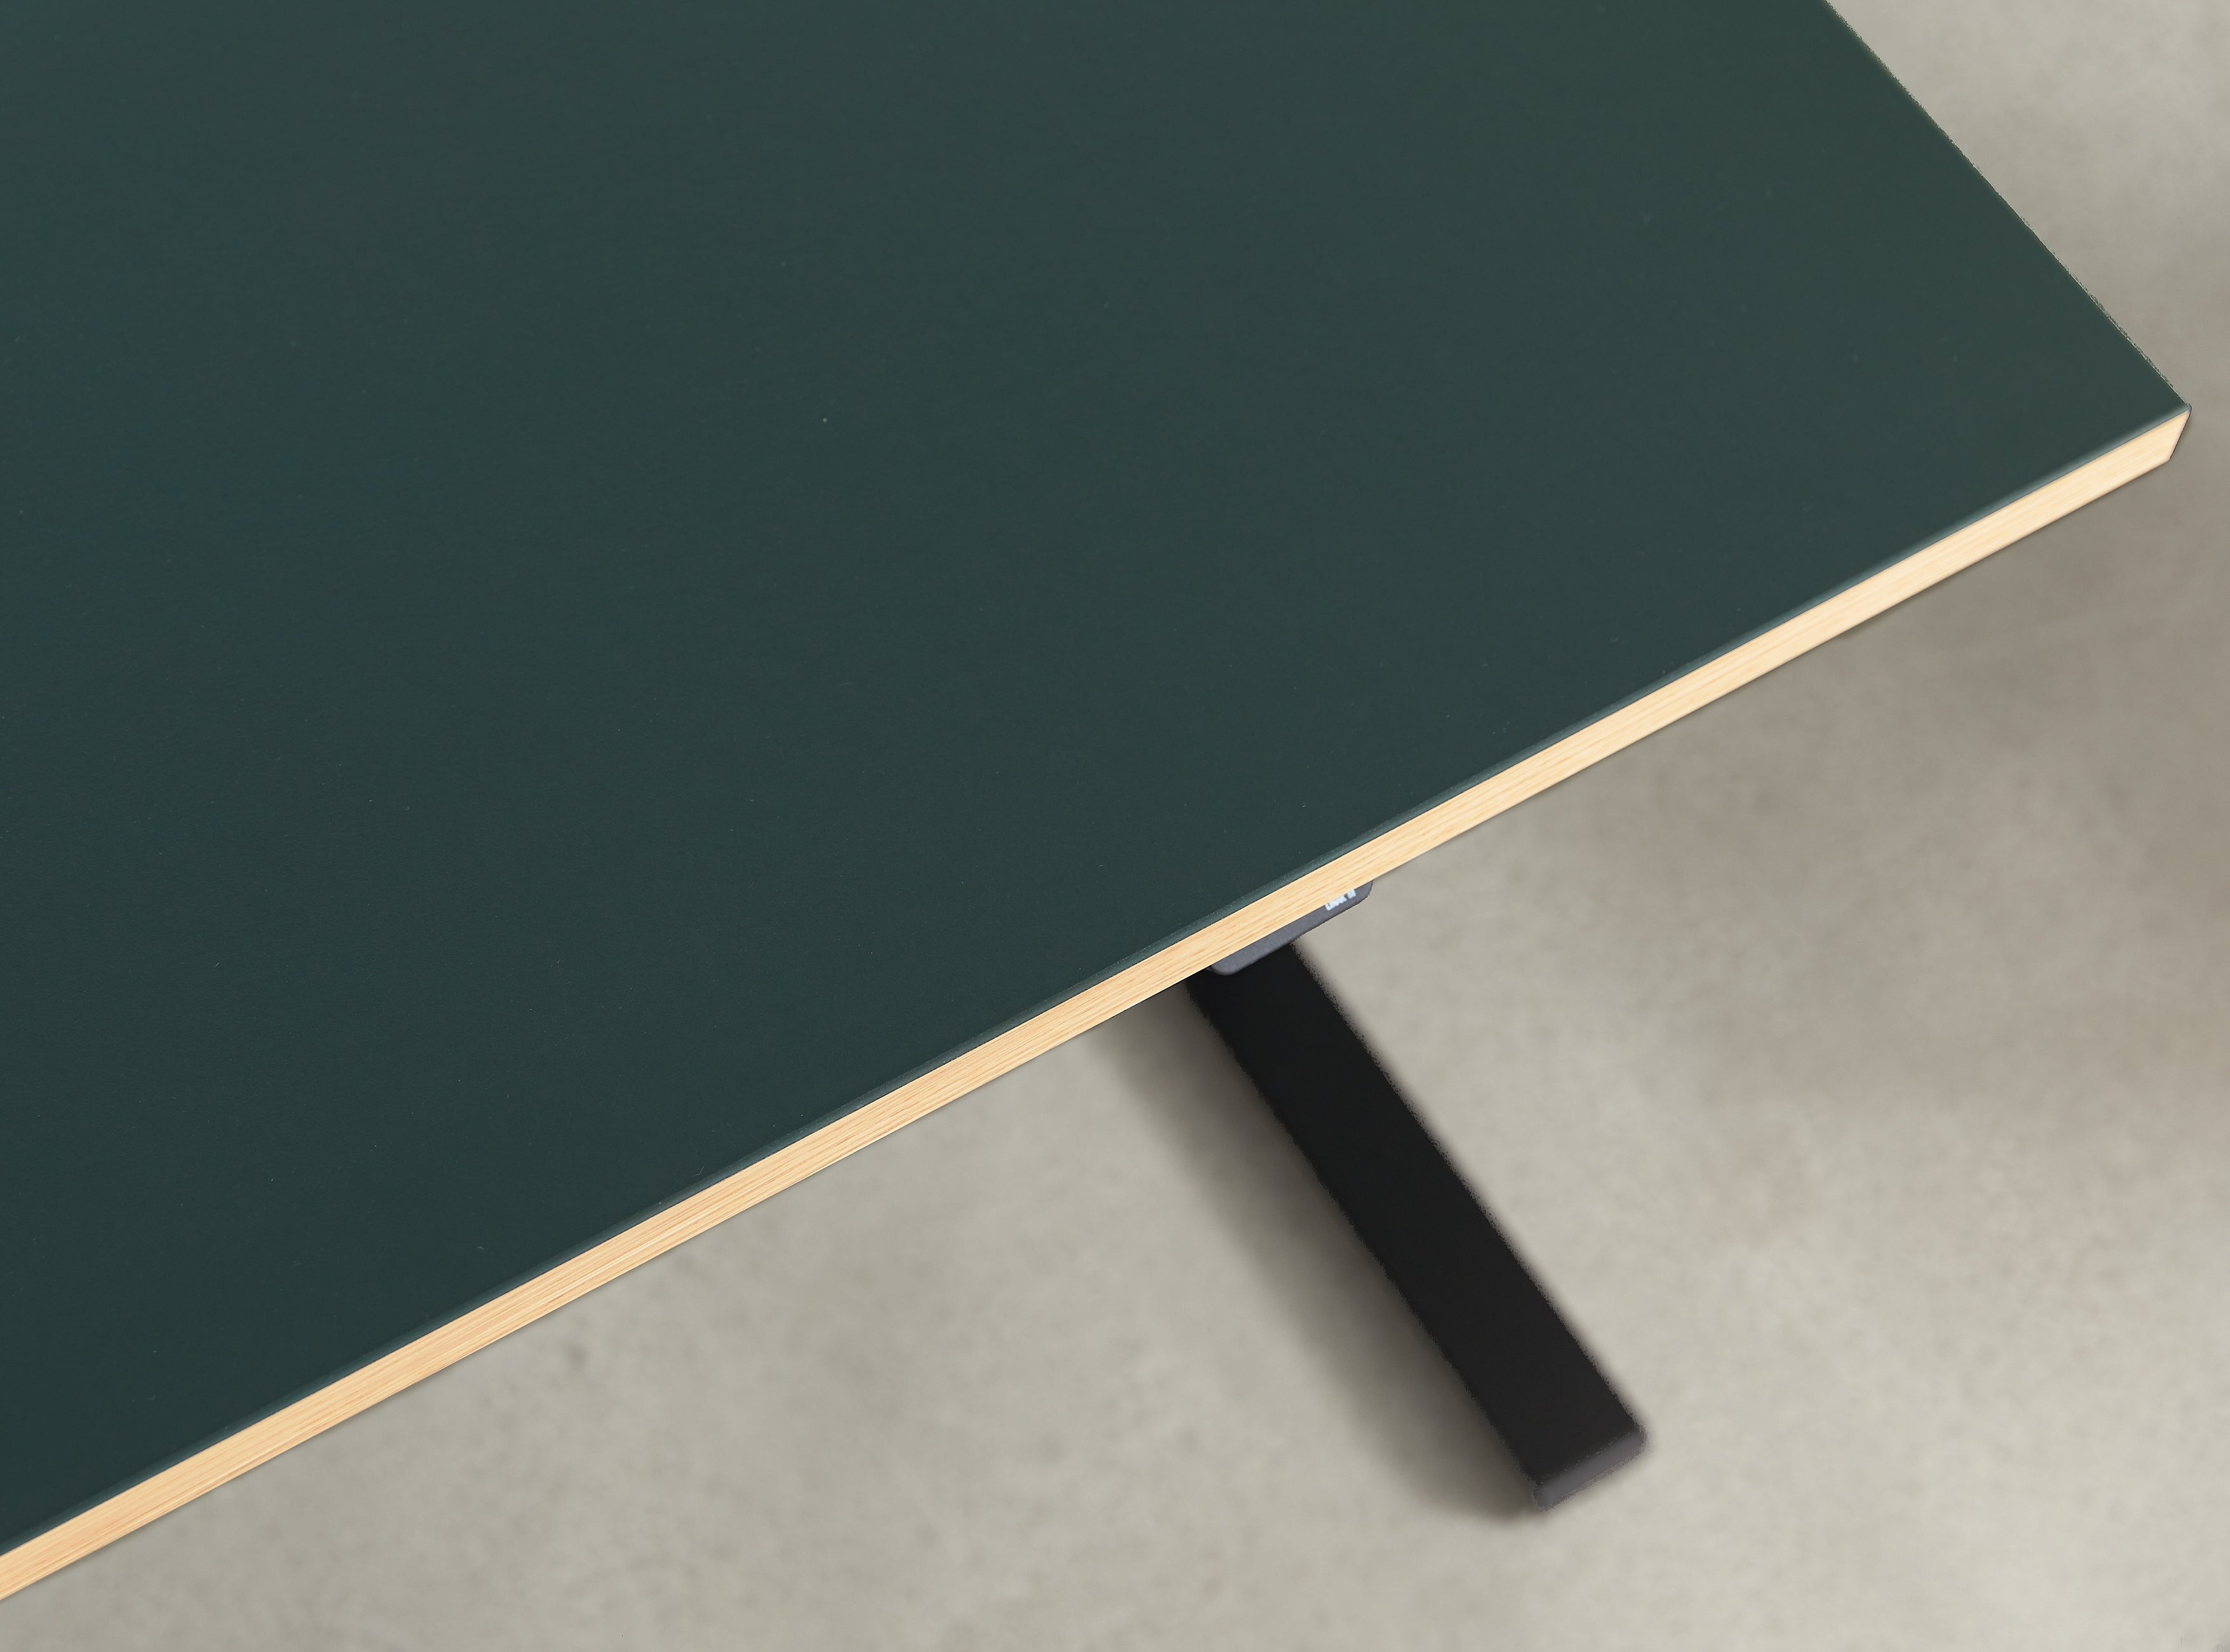 Subscription_OMNI_one_elevation_desk_two_legs_Linak_linoleum_green_table_custom_oak_frame_classy